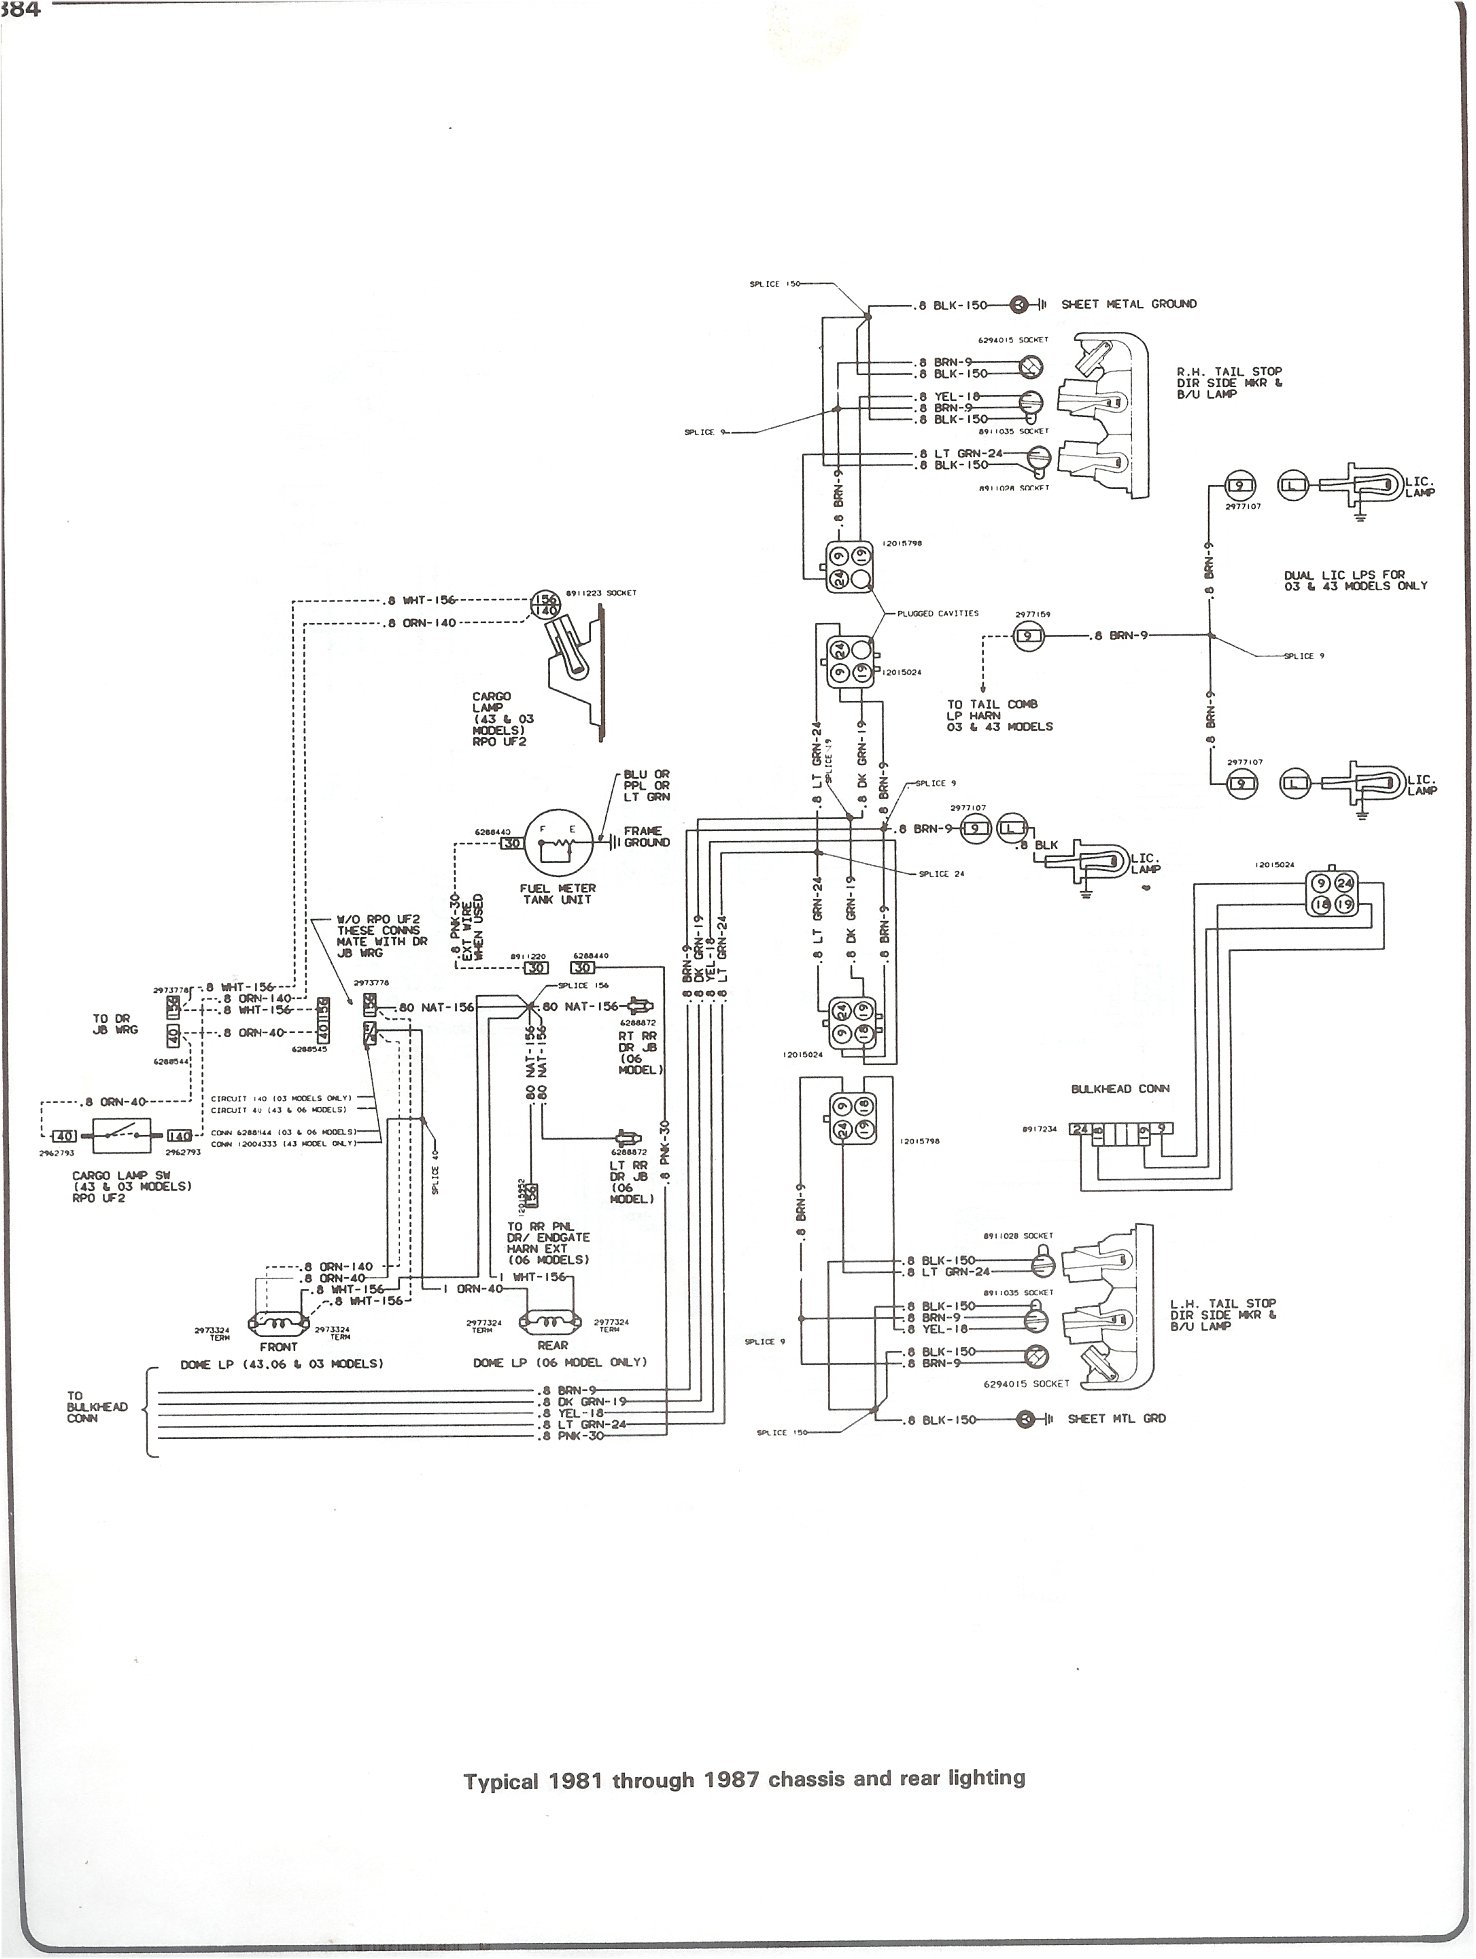 81 87_chass_rr_light complete 73 87 wiring diagrams 73-87 Chevy Wiring Diagrams Site at nearapp.co